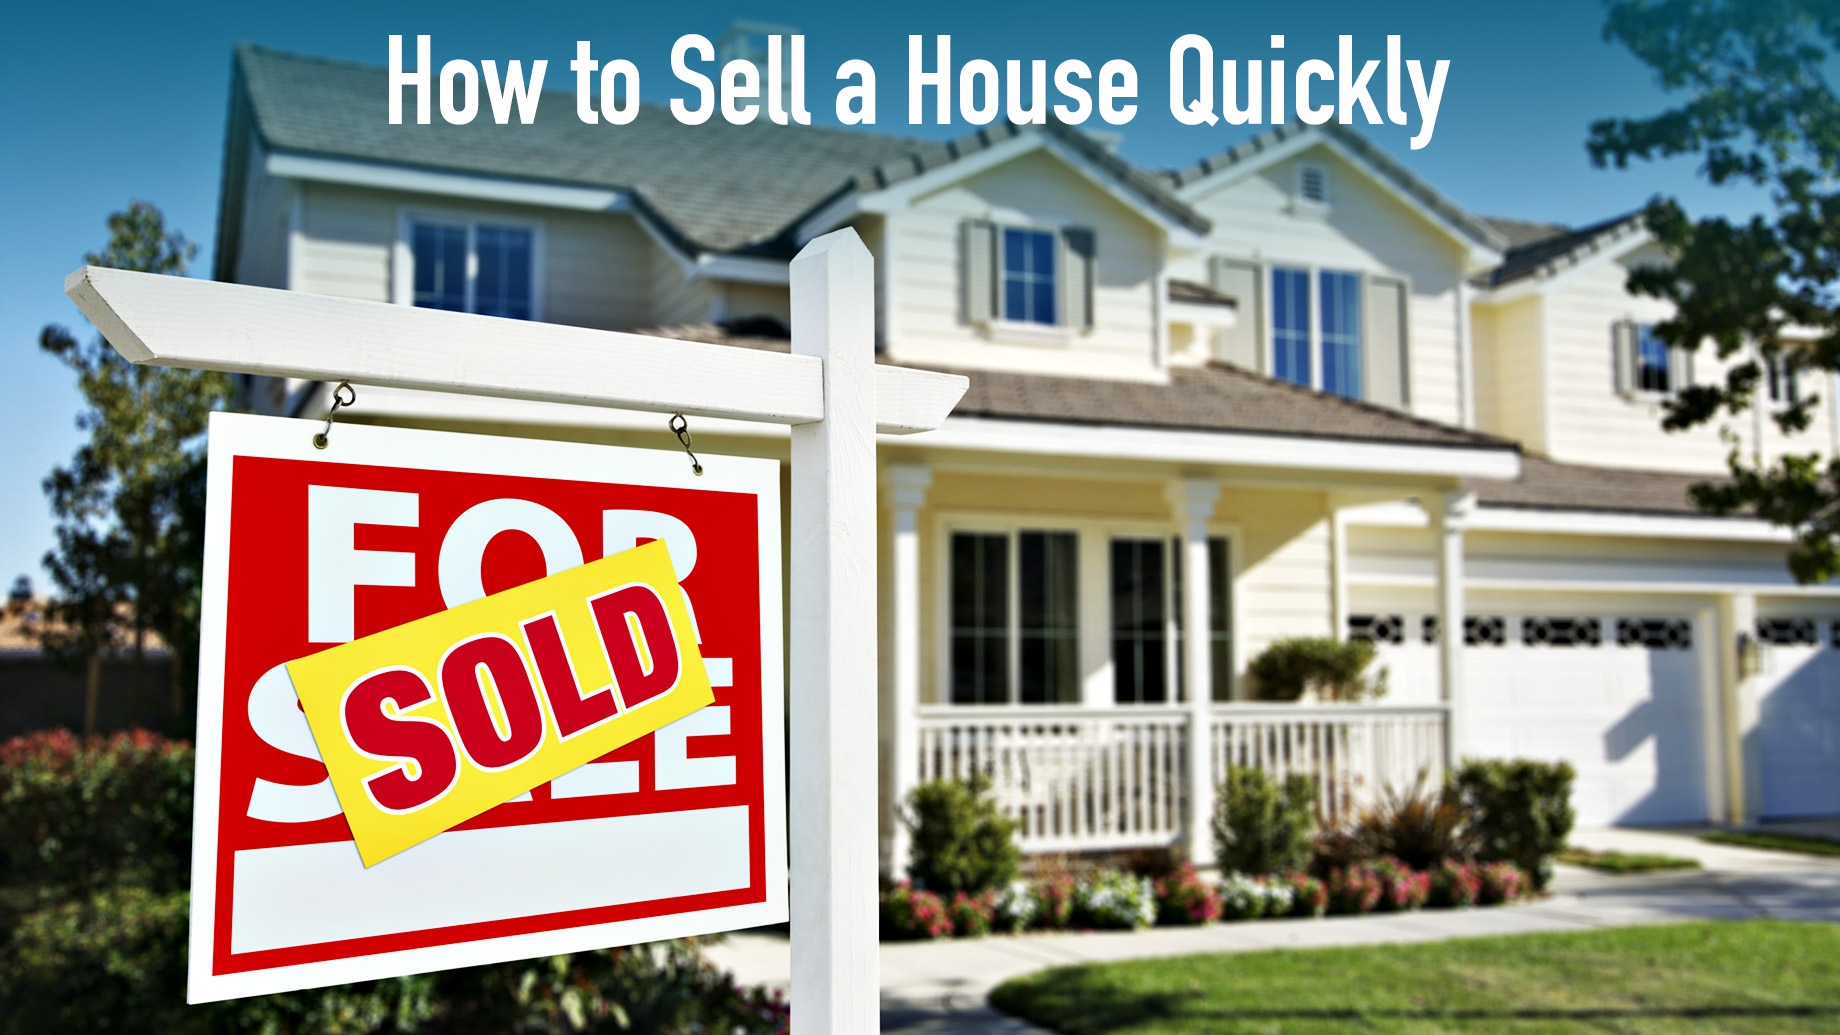 2020 Guide - How to Sell a House Quickly